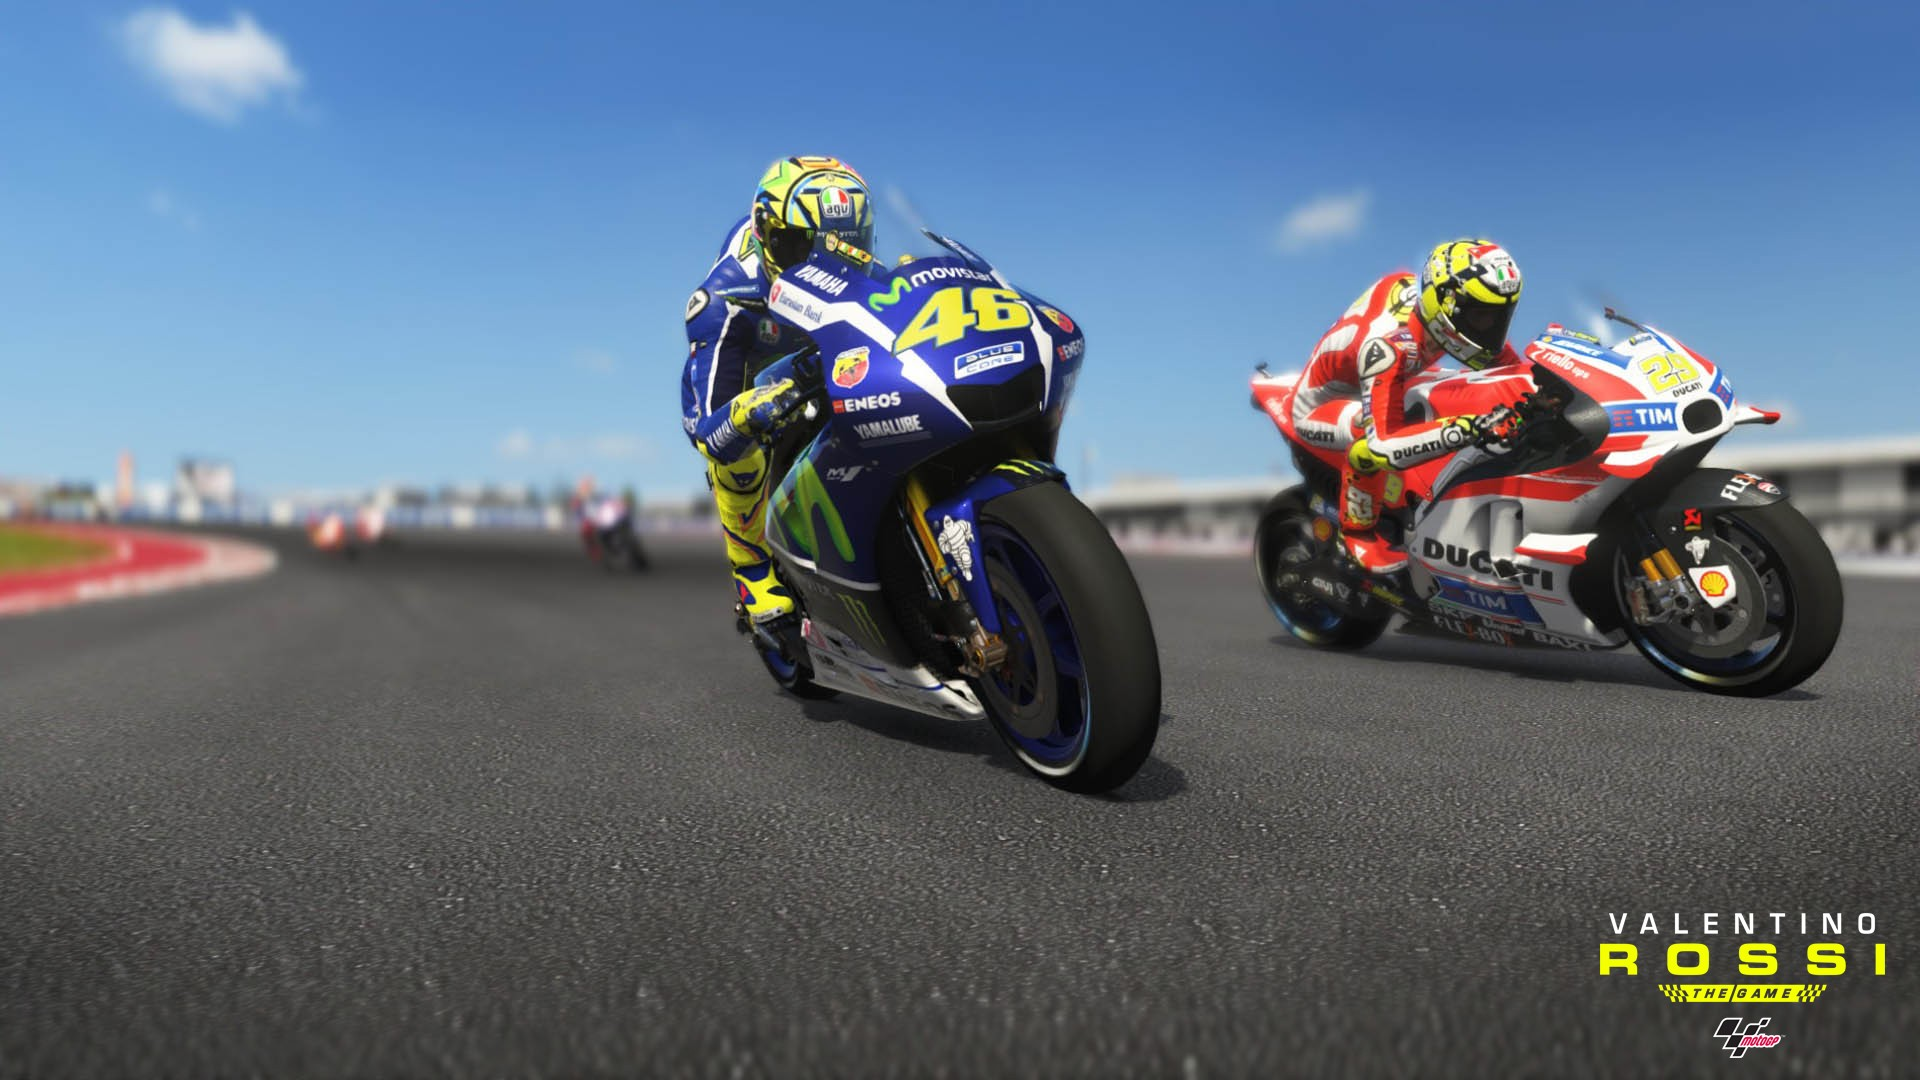 REVIEW - MotoGP 16 Valentino Rossi: The Game